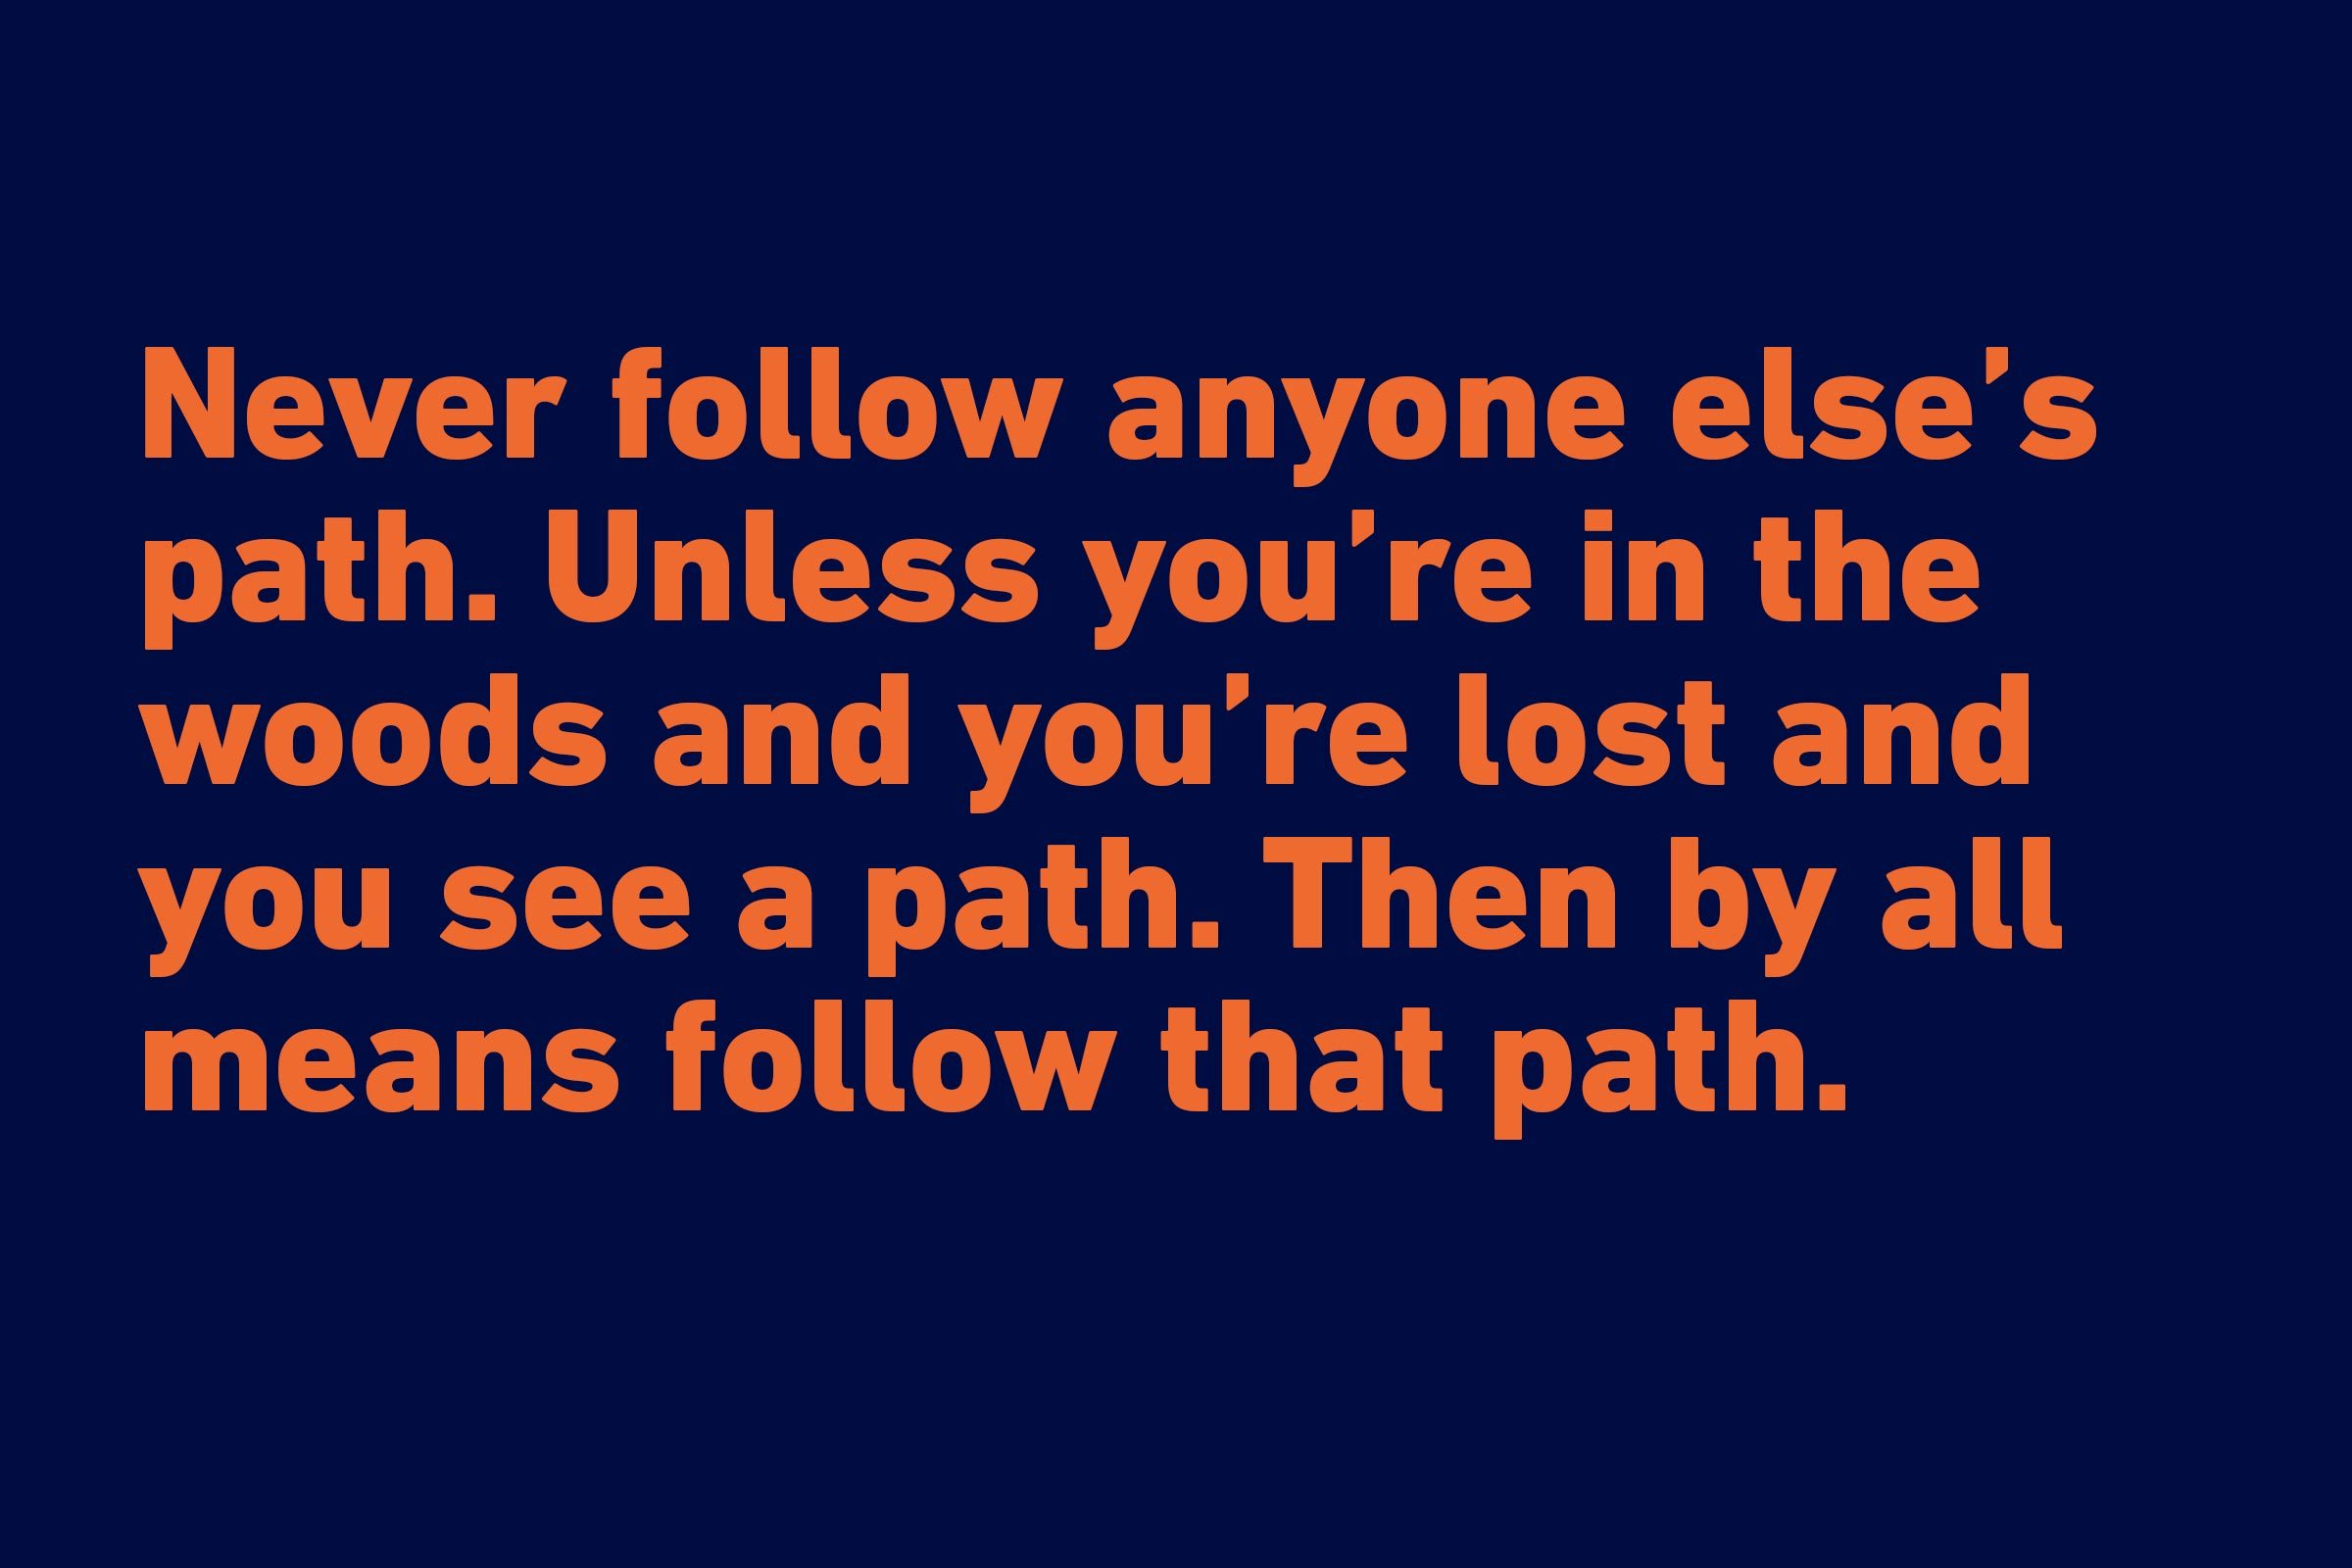 """Never follow anyone else's path. Unless you're in the woods and you're lost and you see a path. Then by all means follow that path."" —Ellen DeGeneres"